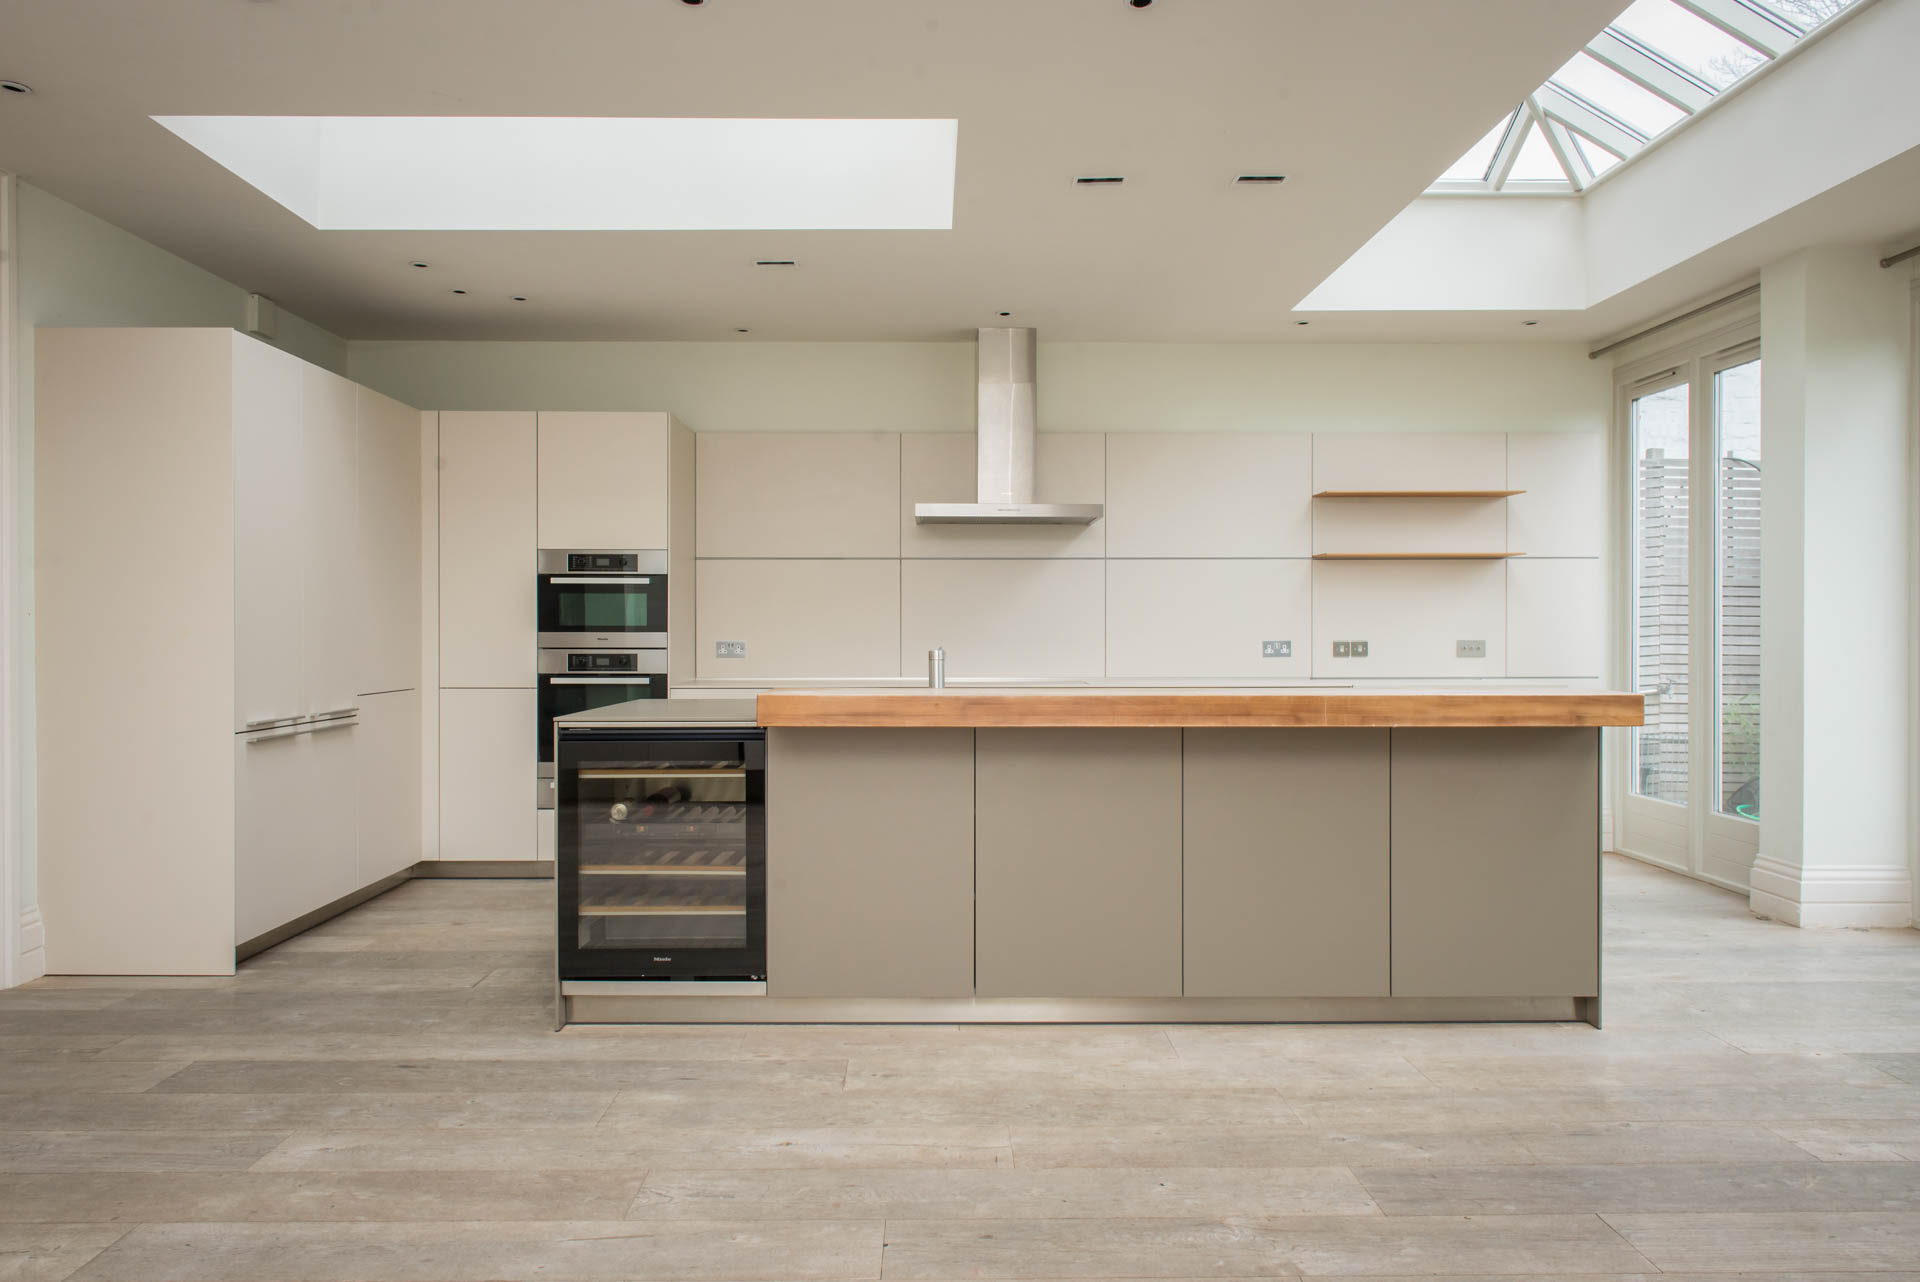 Bulthaup B3 Approved Used Kitchen, Bulthaup B3 (german), Utility, Gaggenau/miele Appliances, London - Used Kitchen Exchange